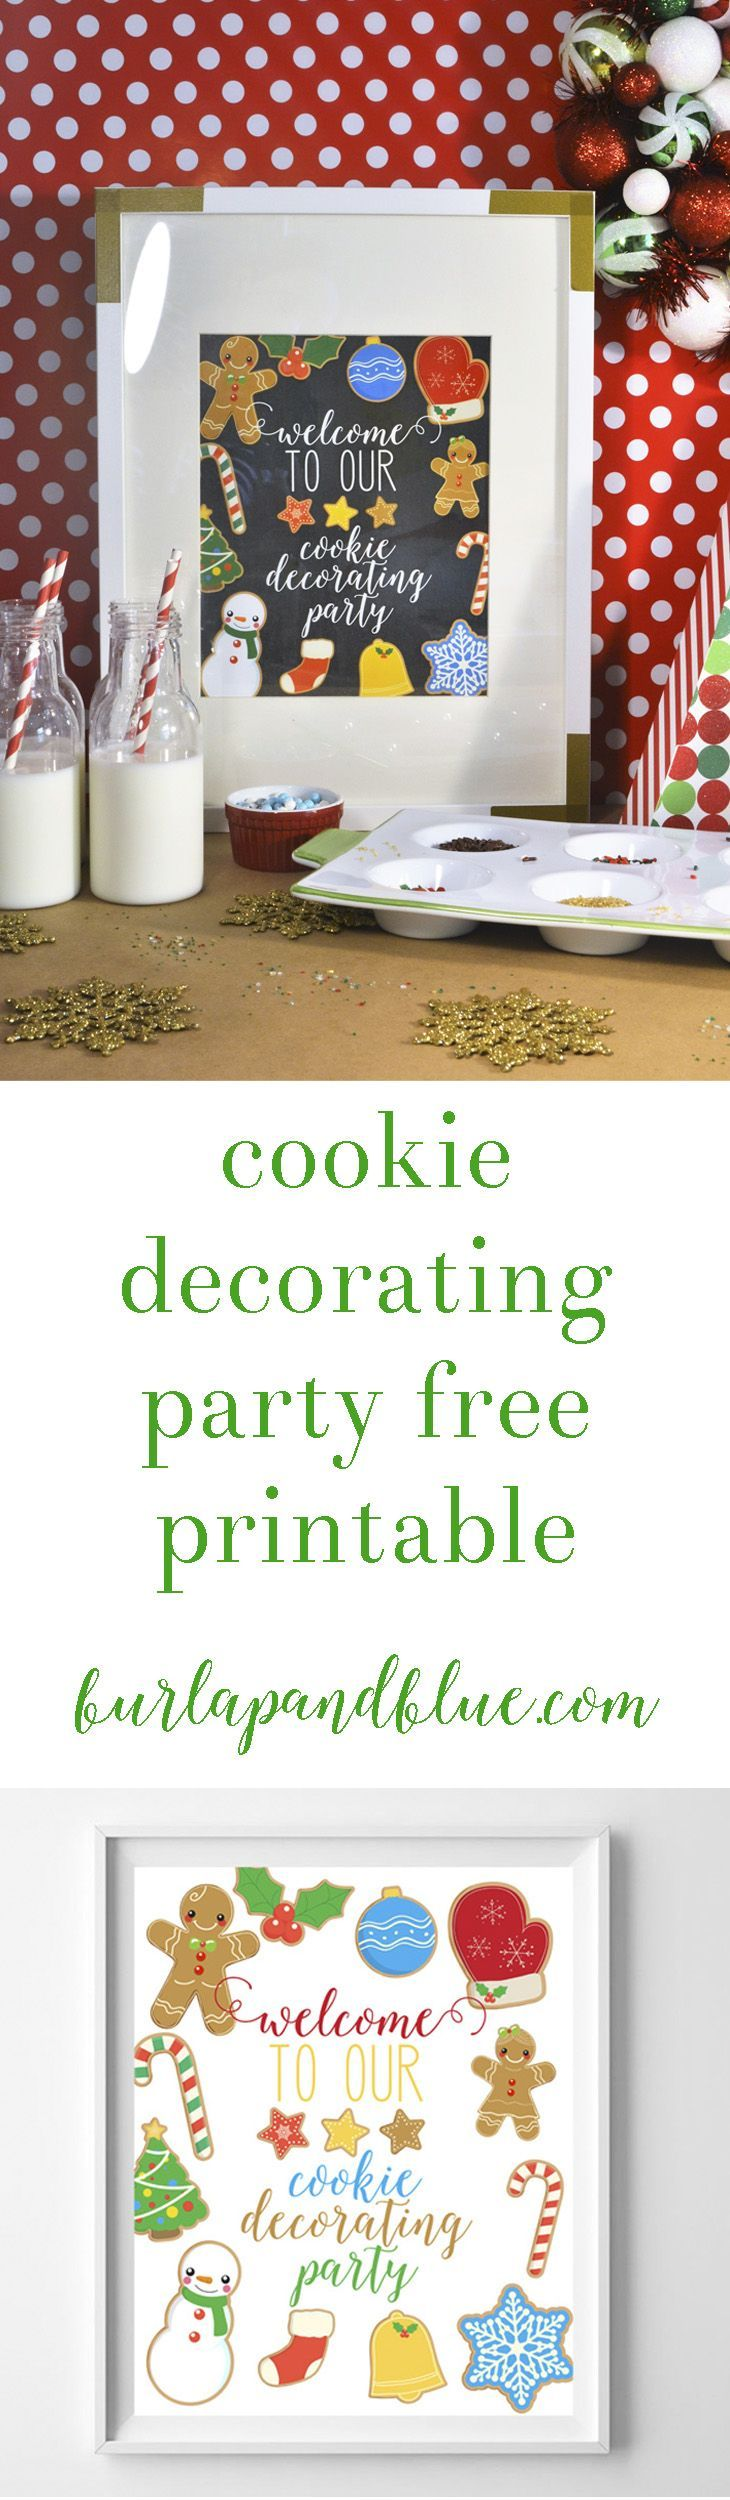 Cookie decorating party ideas - Kids Cookie Decorating Party Ideas With Glade